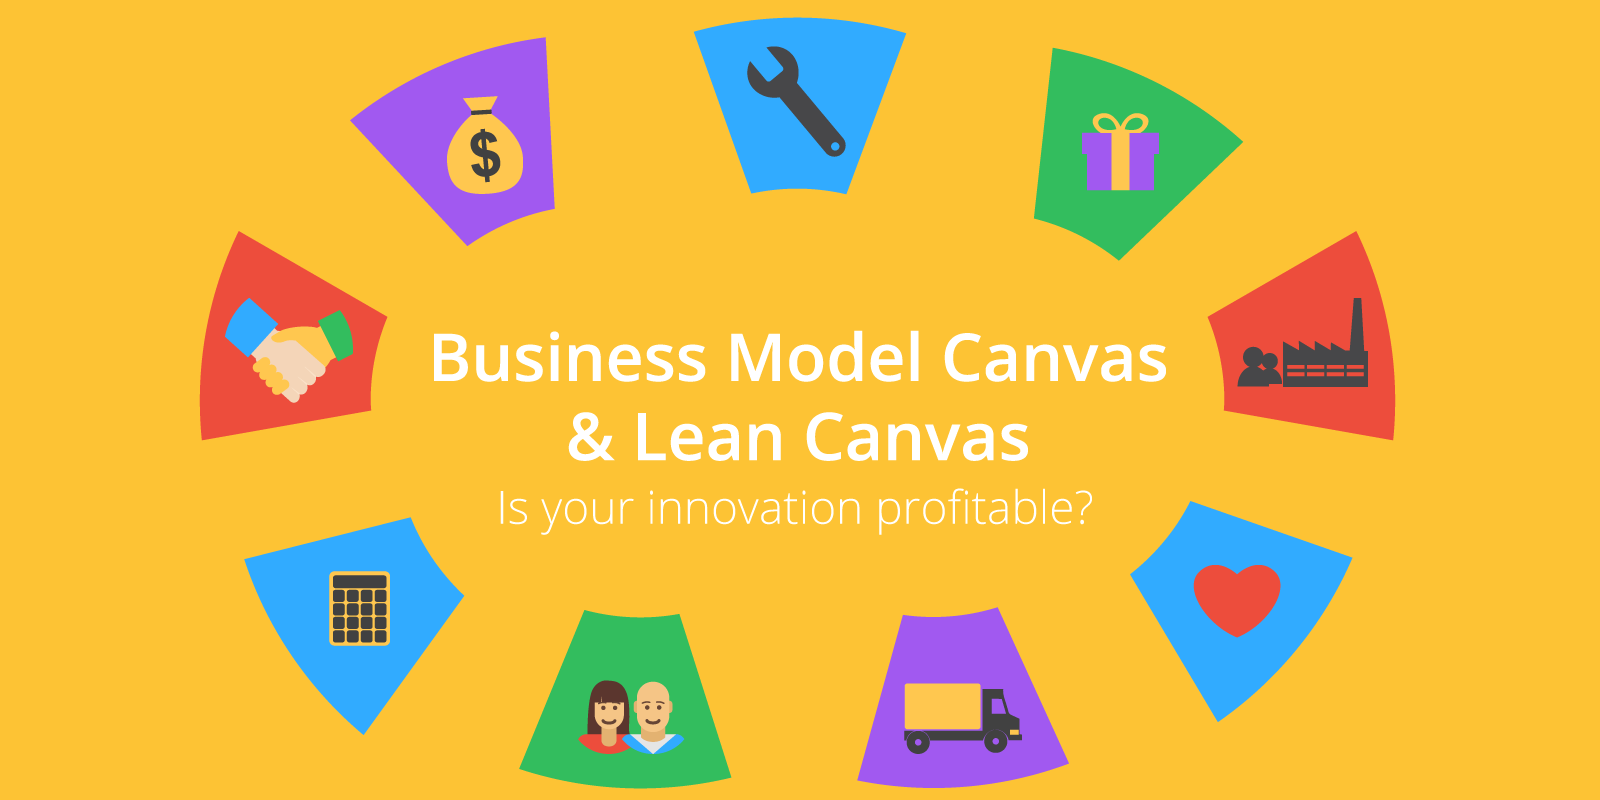 Business-Model-Canvas&Lean-Canvas